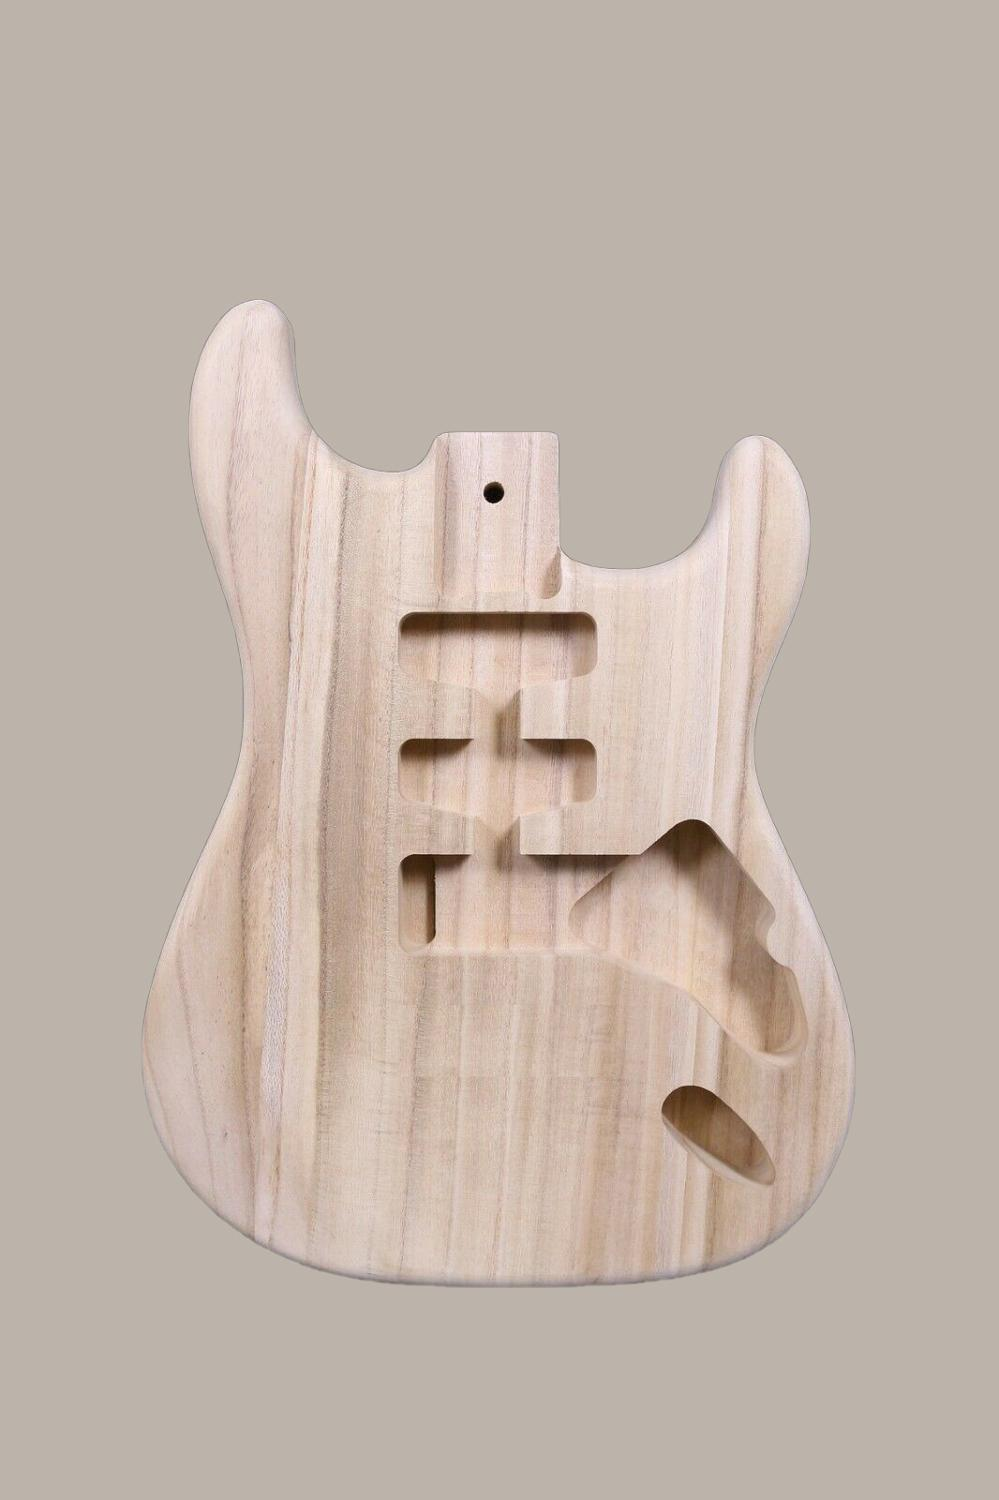 Unfinished Guitar Body Strat Style SSH Paulownia Wood DIY Electric Guitar SANDED